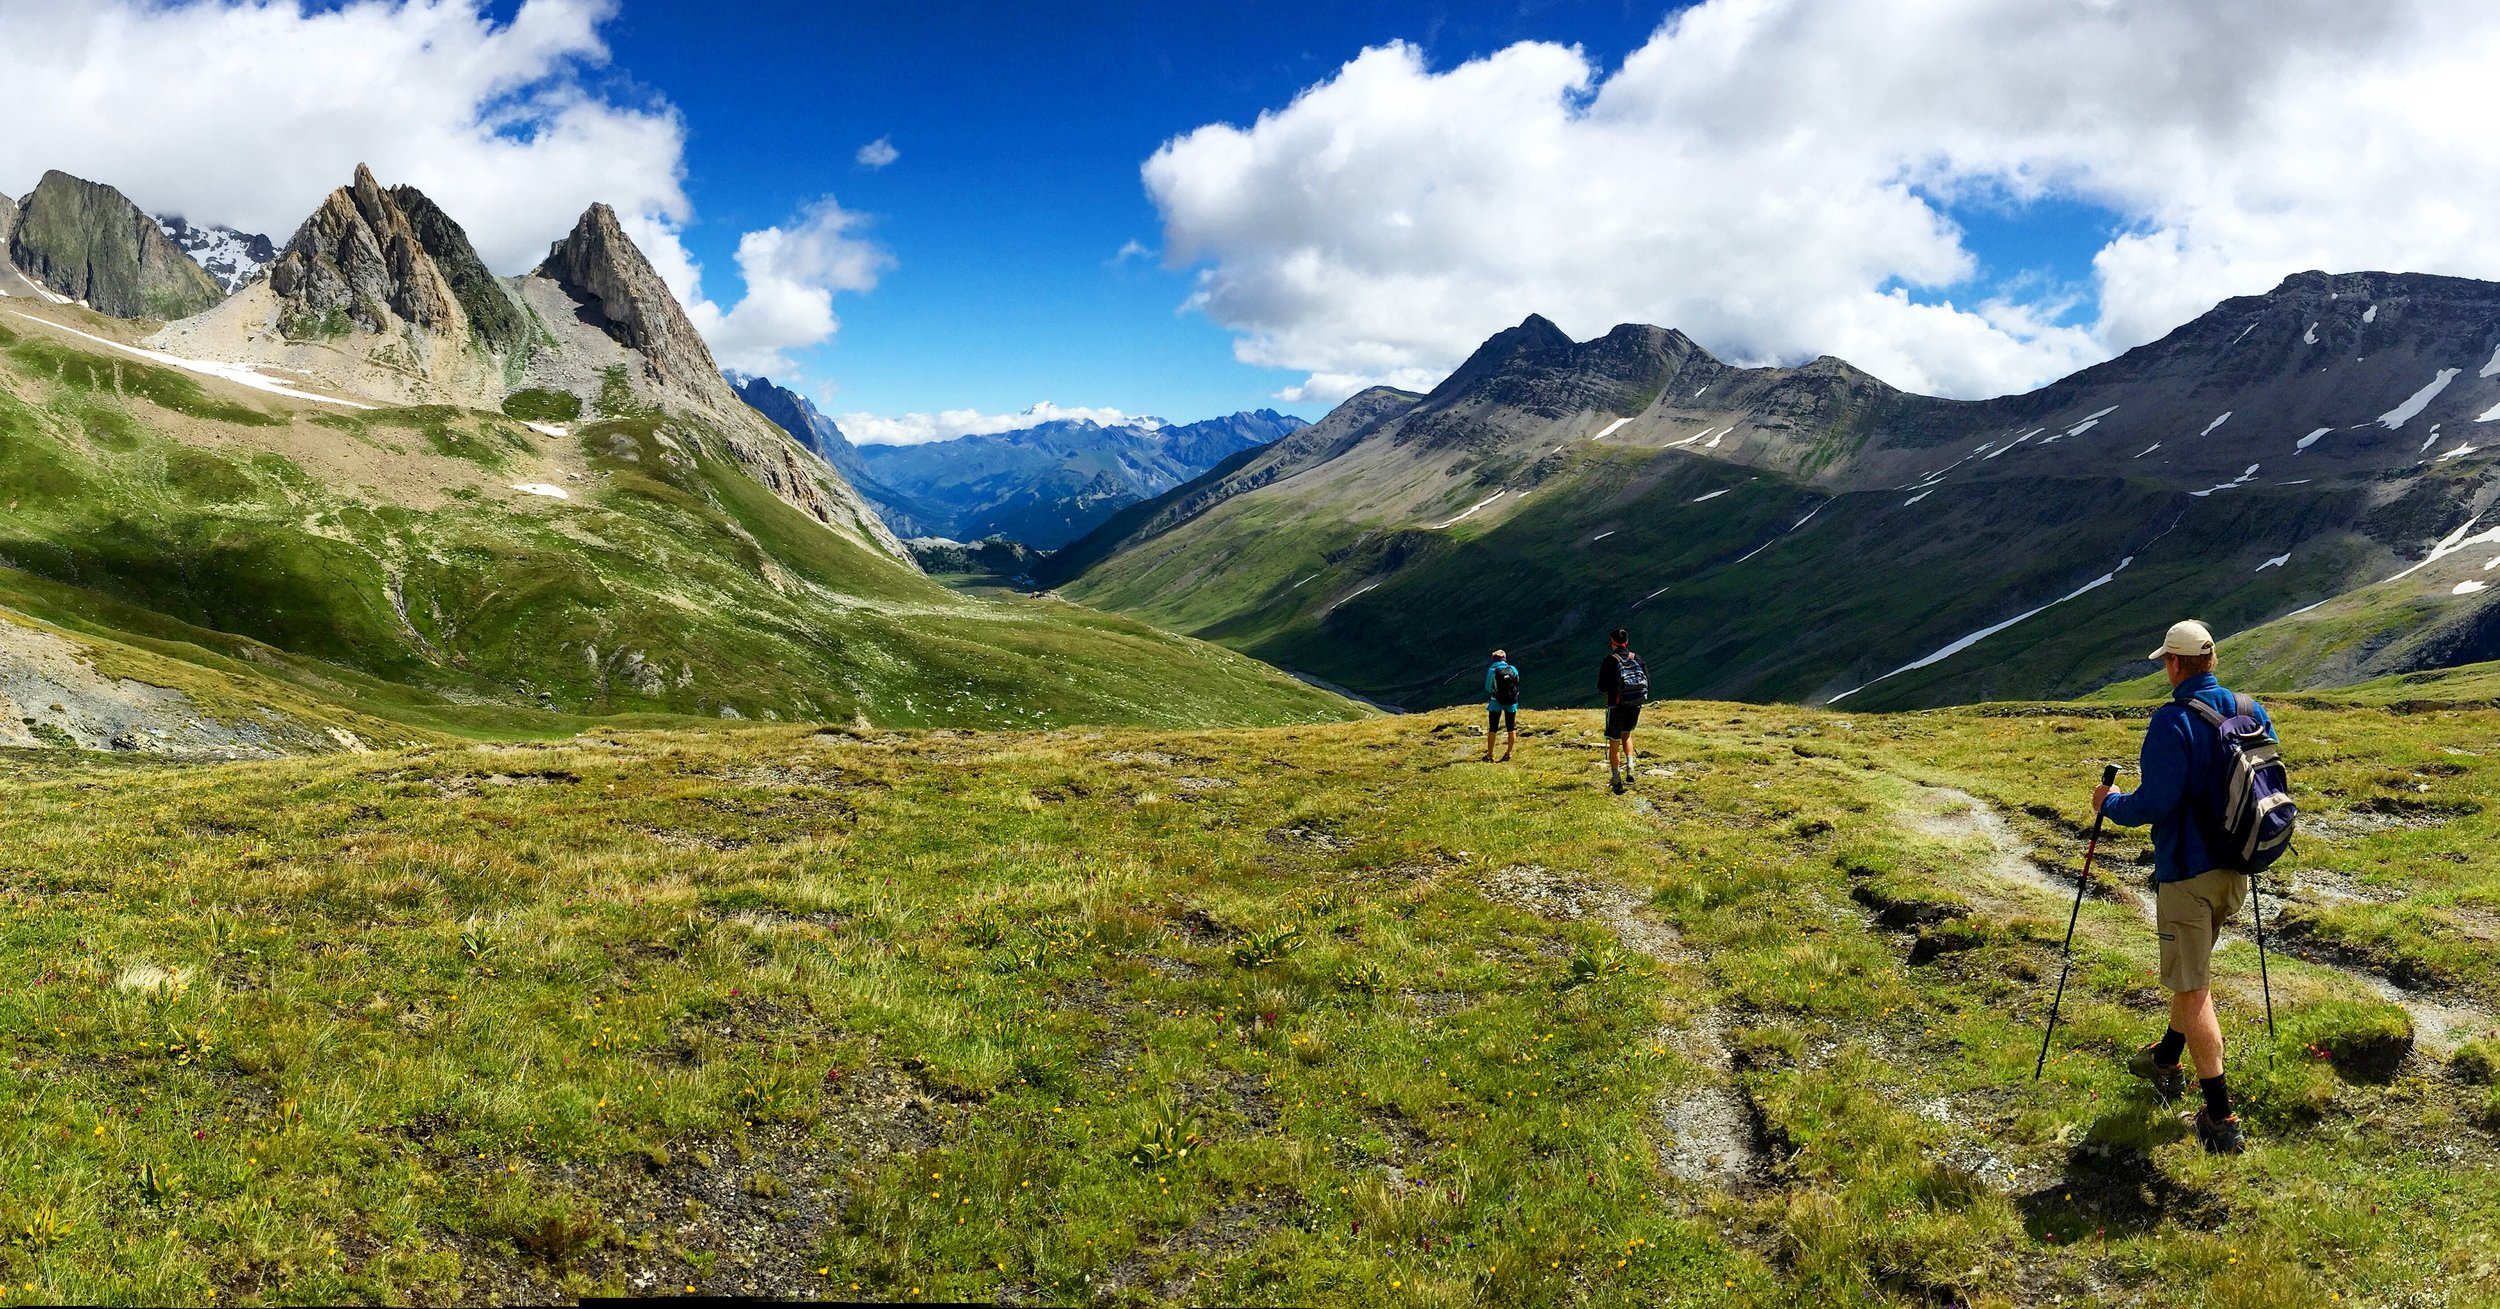 Having just crossed over Col de la Seigne, we hike down into Italy and a nice pasta dinner.